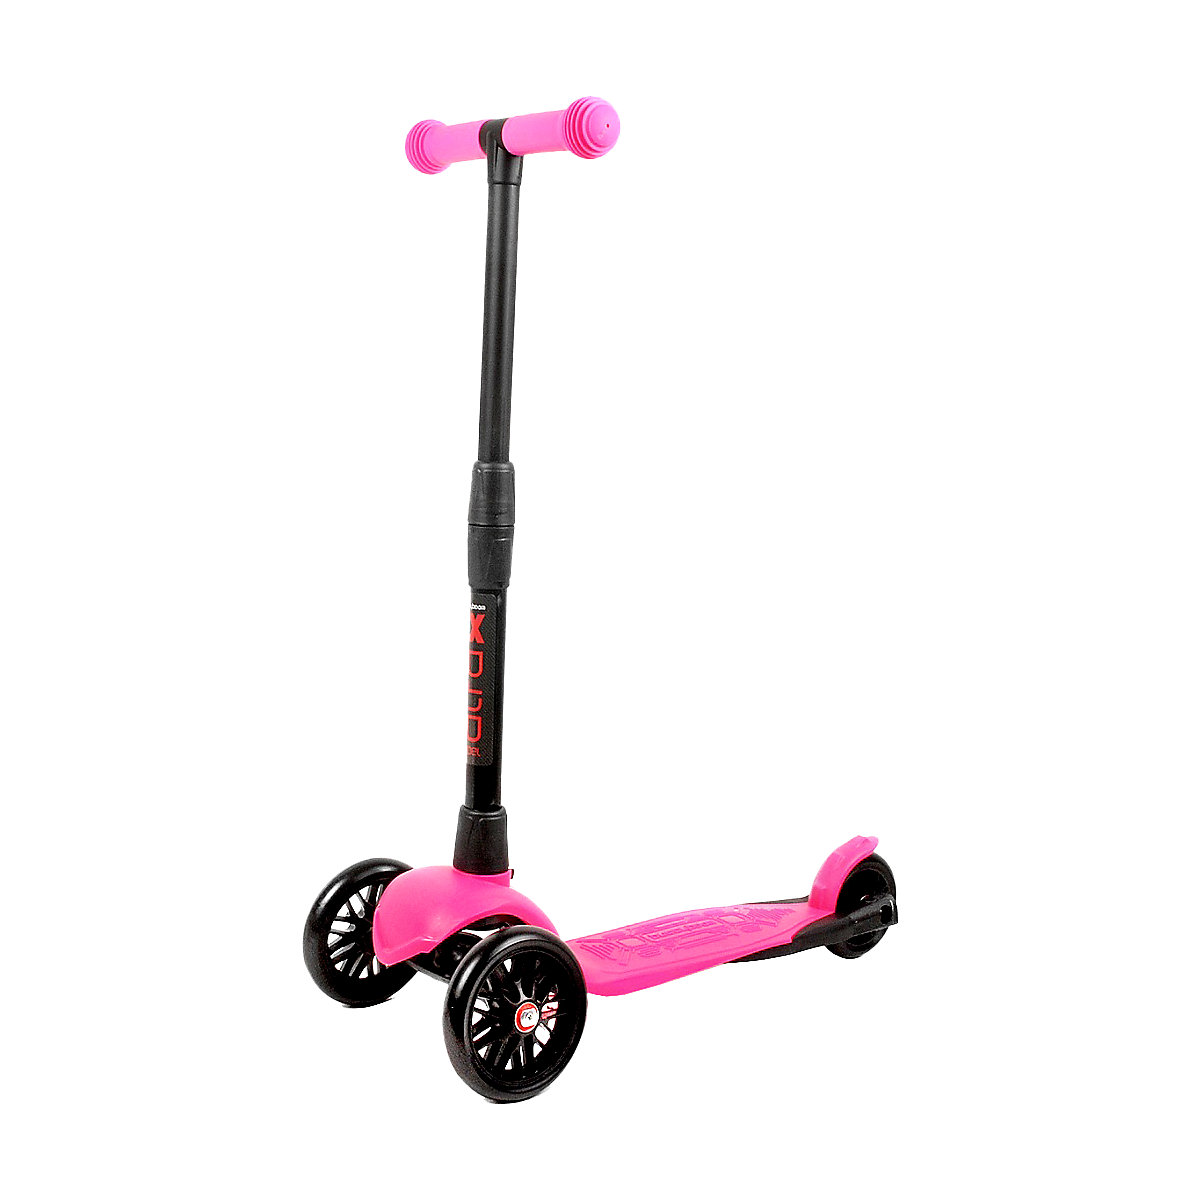 BUGGY BOOM Kick Scooters,Foot Scooters 11136563 scooter three-wheeled for children boys and girls